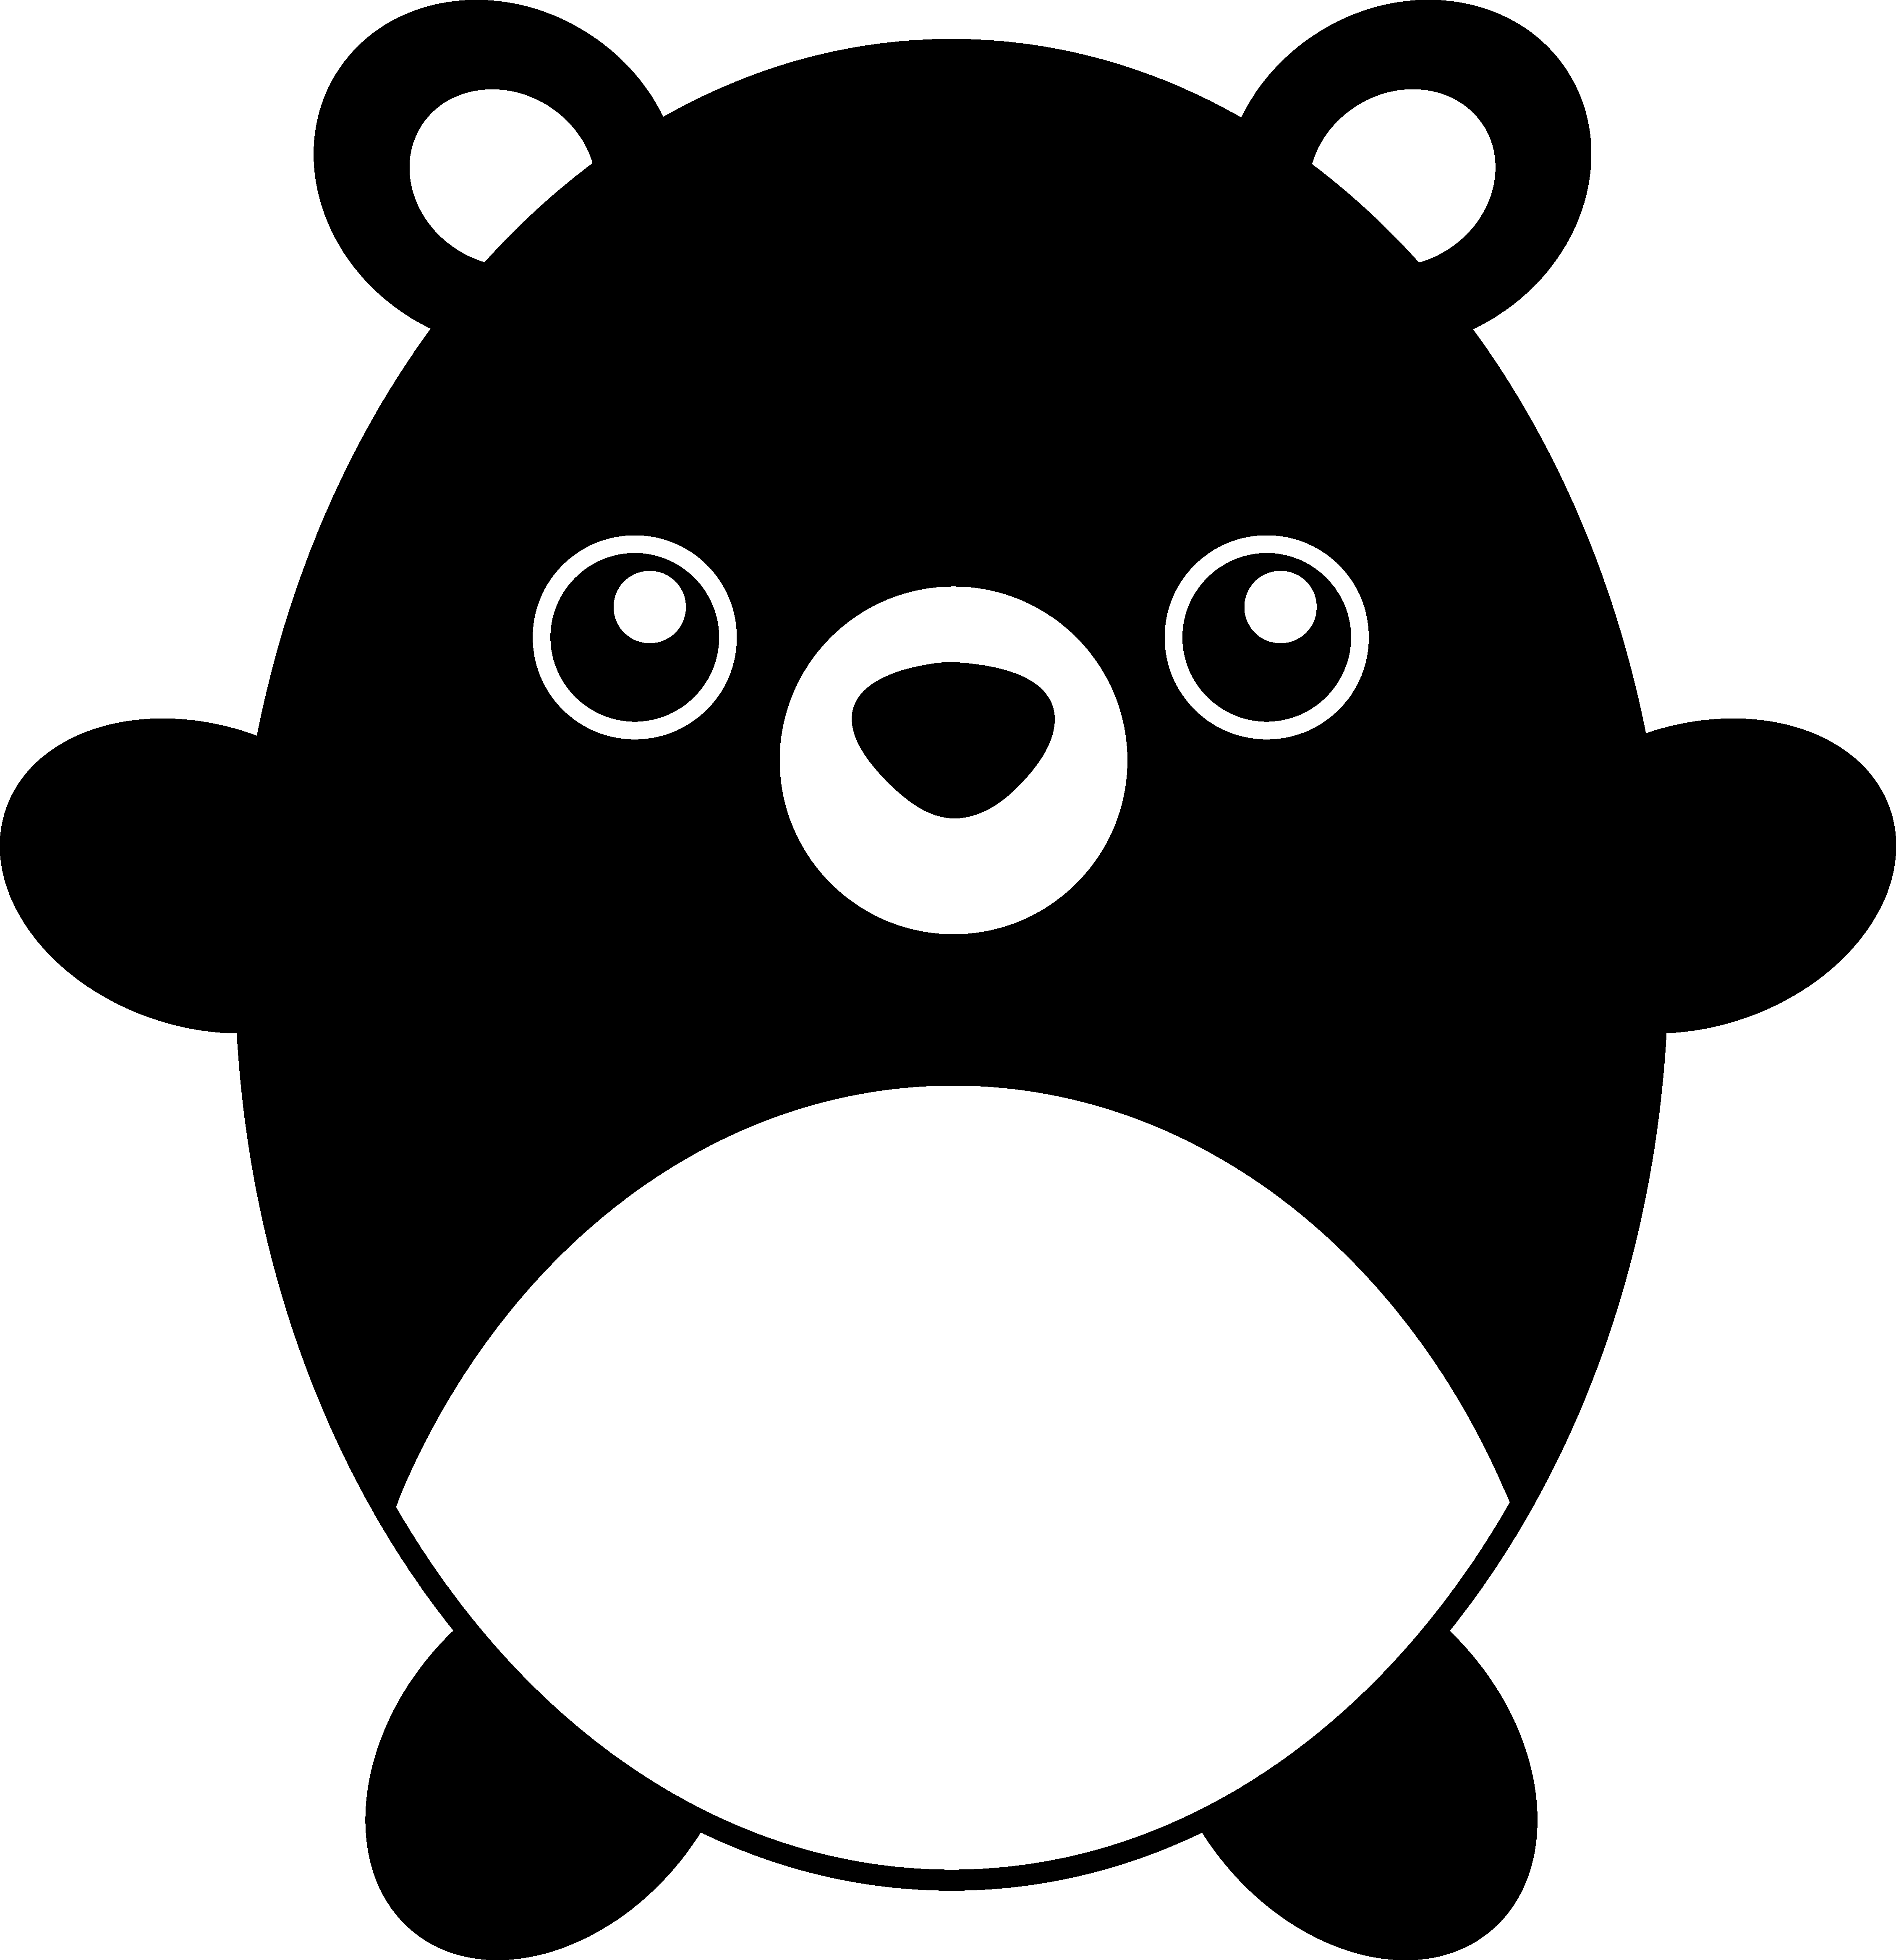 png transparent stock Teddy bear black and white clipart. Cute chubby free clip